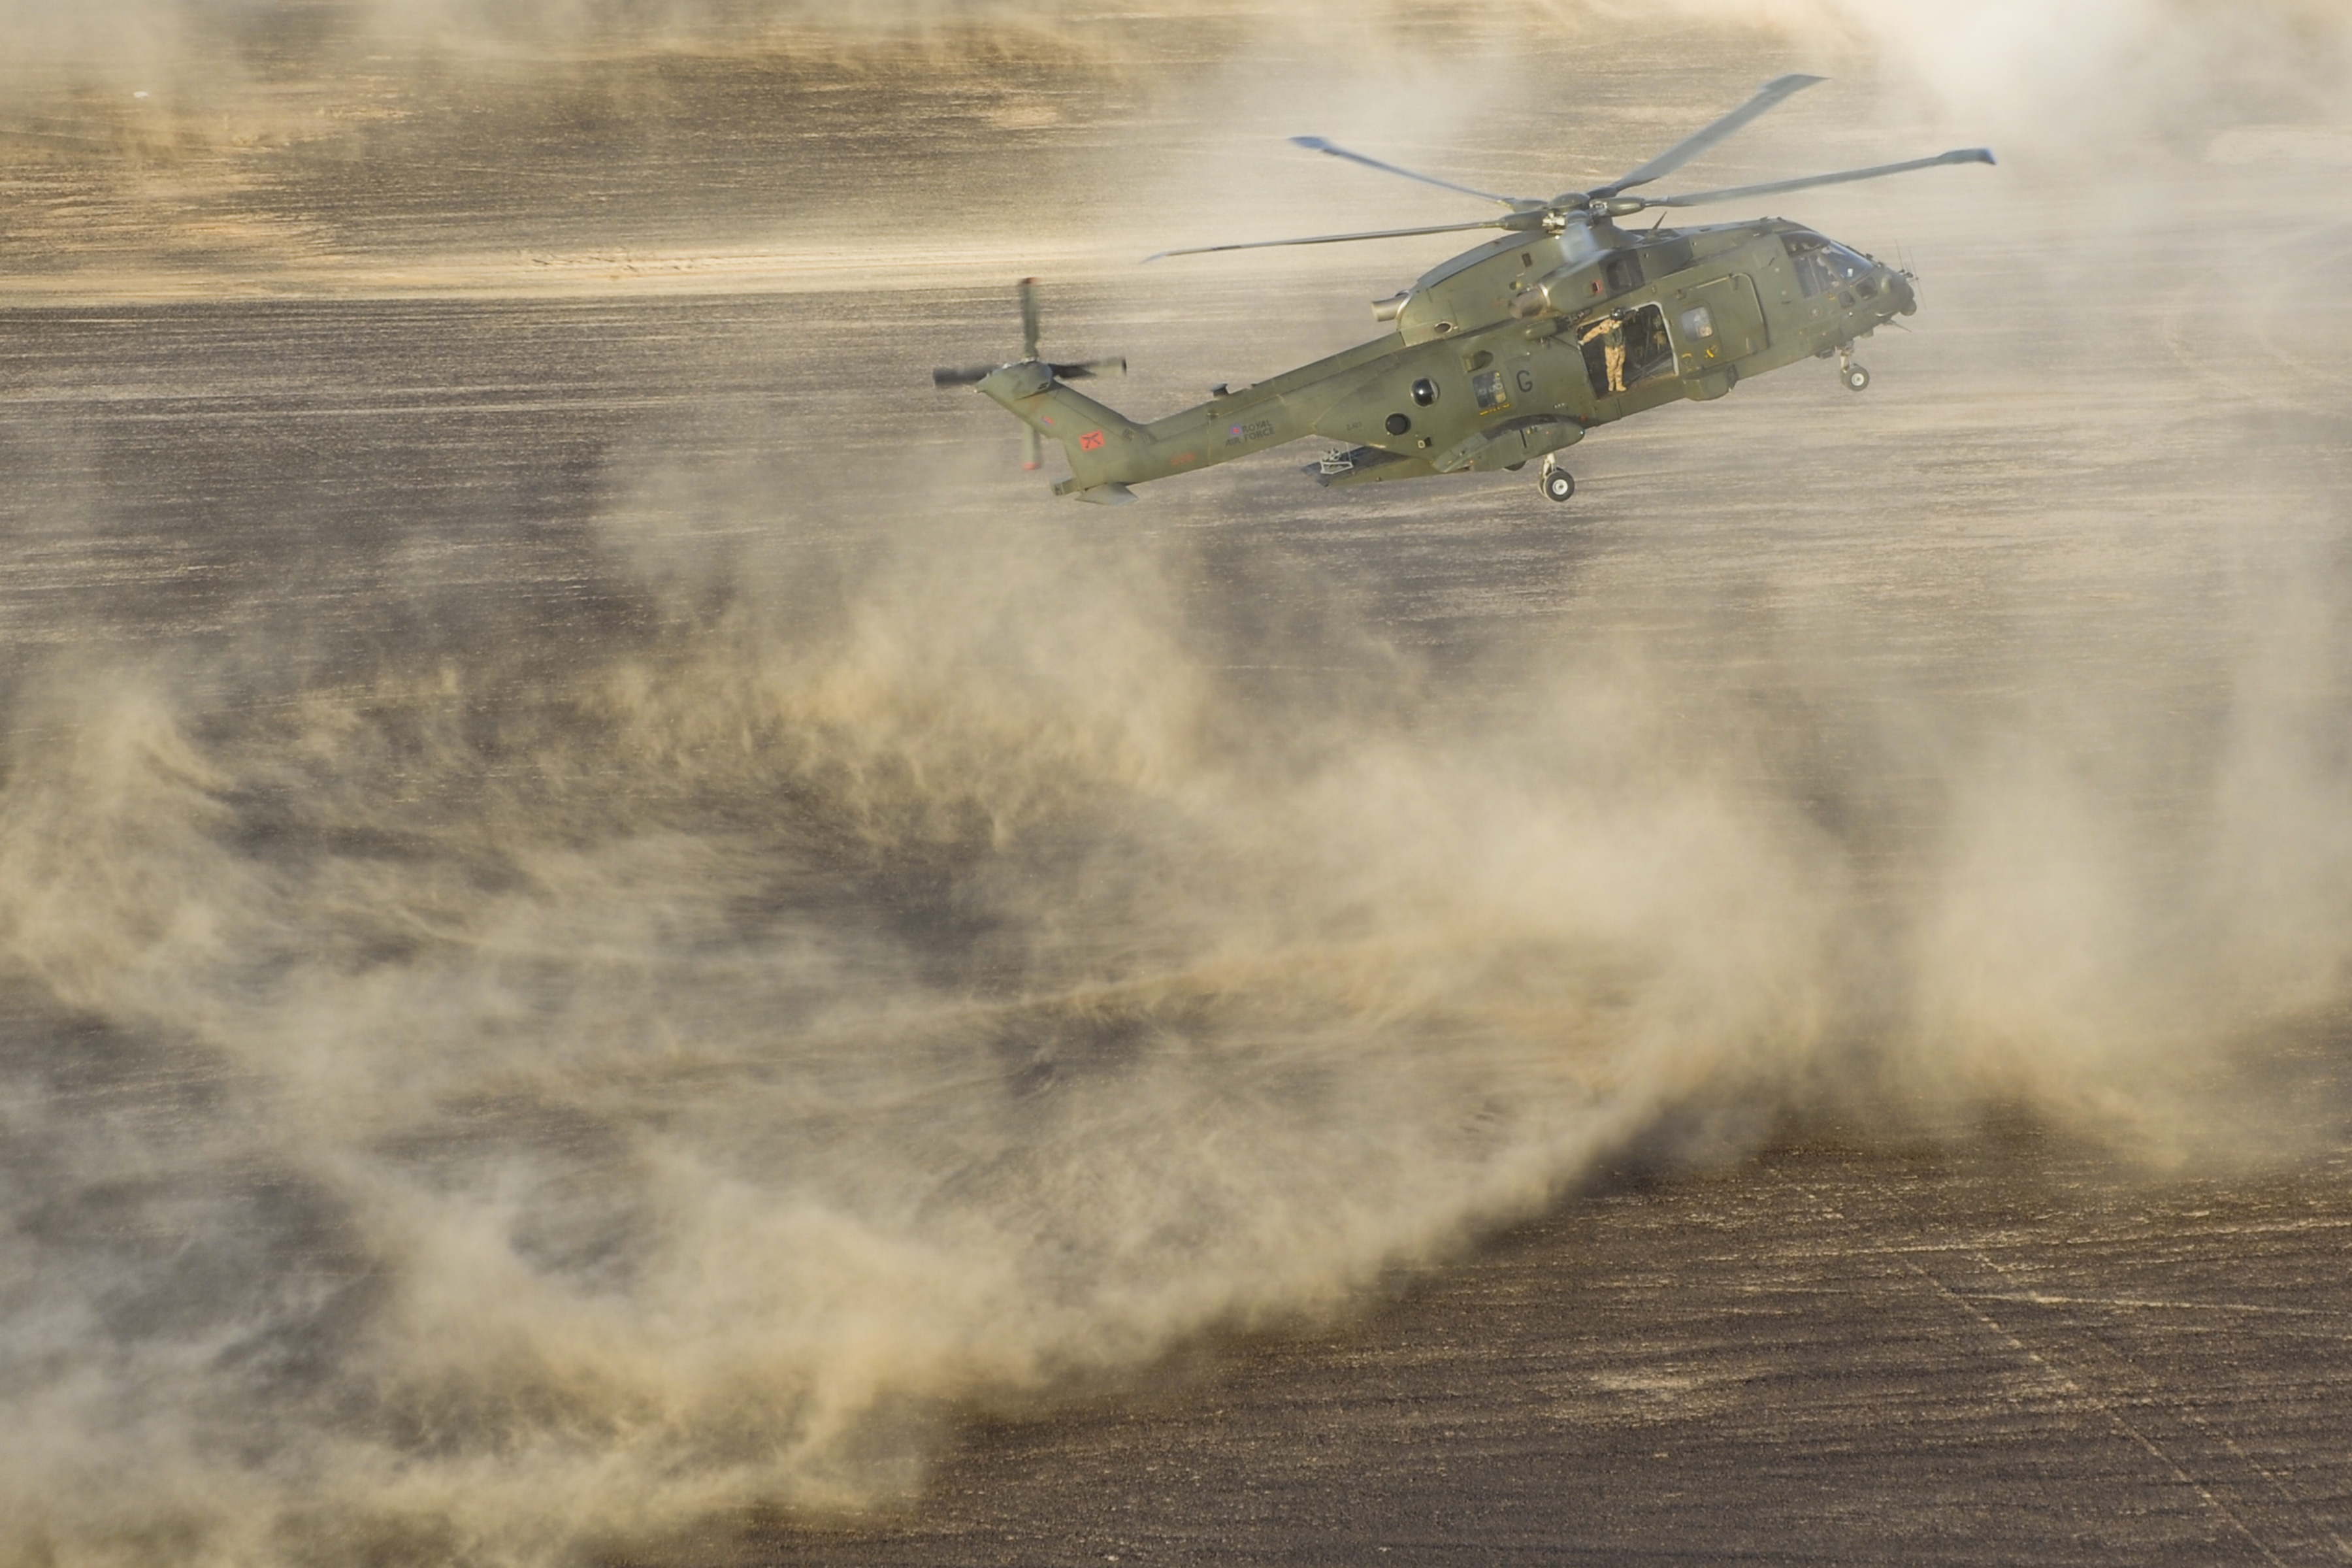 File:RAF Merlin Helicopters During Exercise Desert Vortex